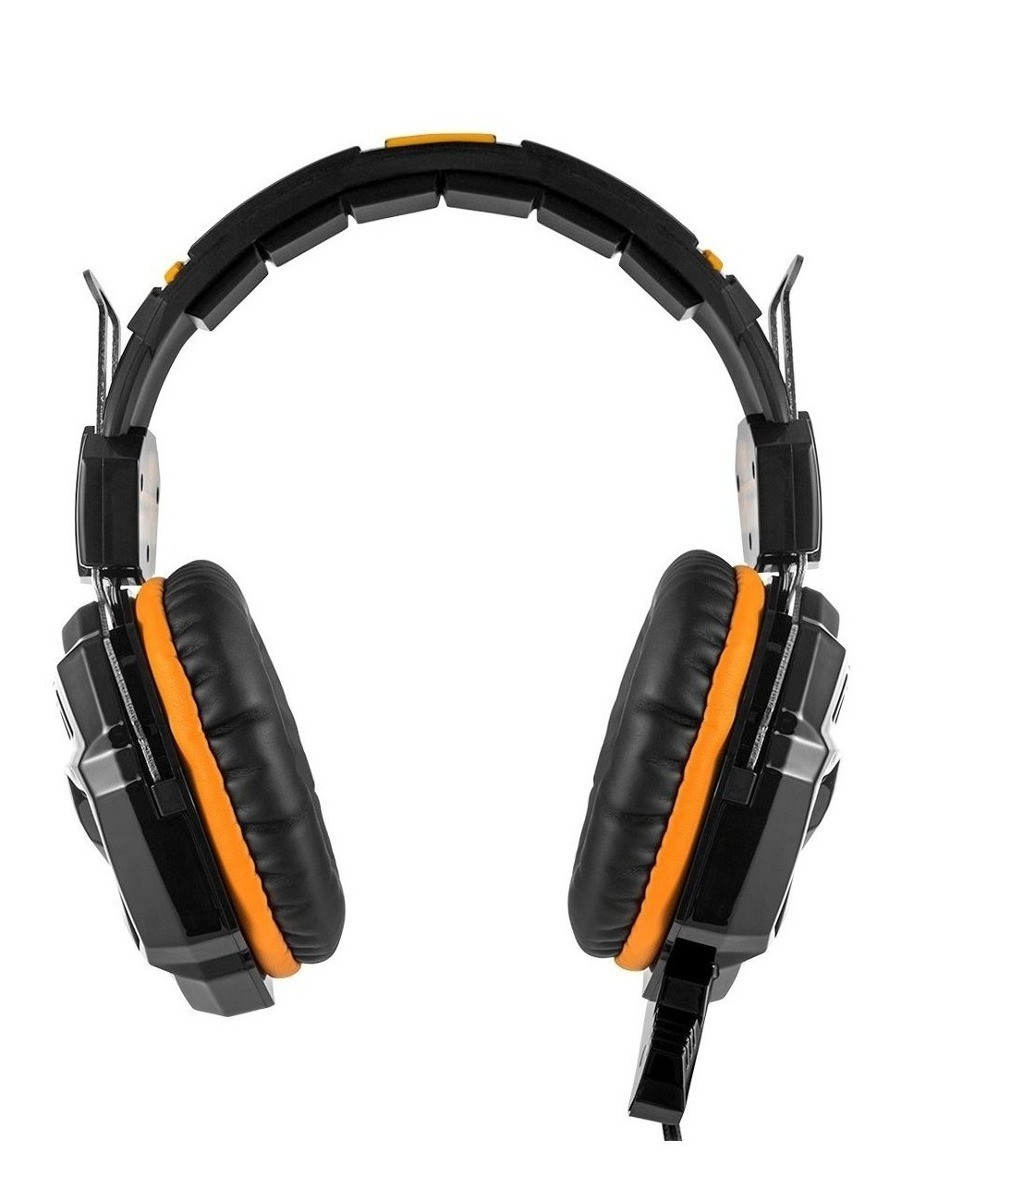 AURICULAR LEVEL UP C/MICROF COPPERHEAD PS4/PC/XBOX